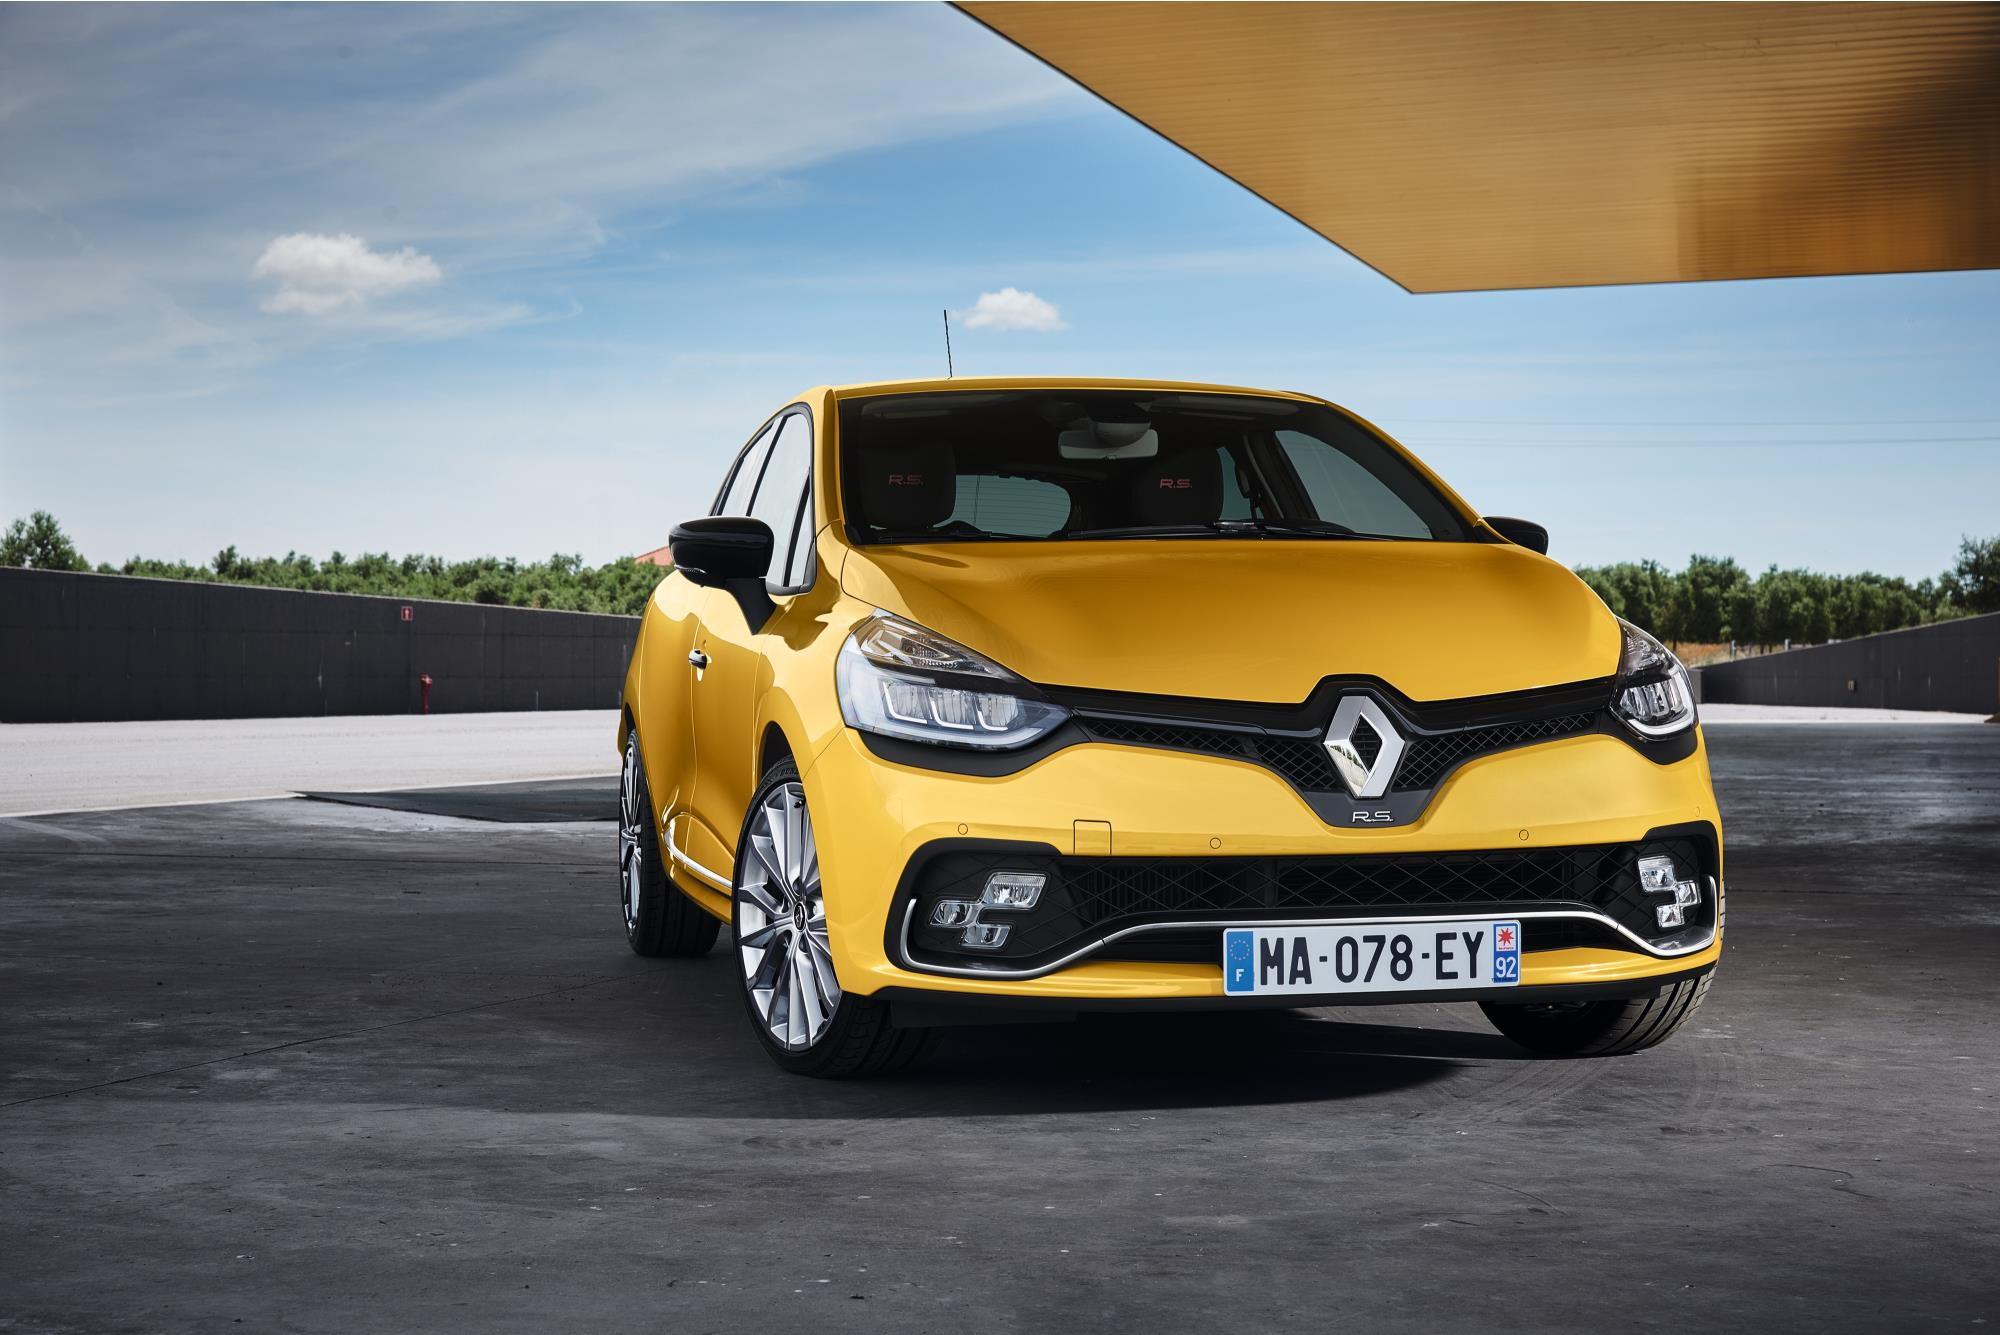 2017 renault clio renault sport photos cars uk. Black Bedroom Furniture Sets. Home Design Ideas